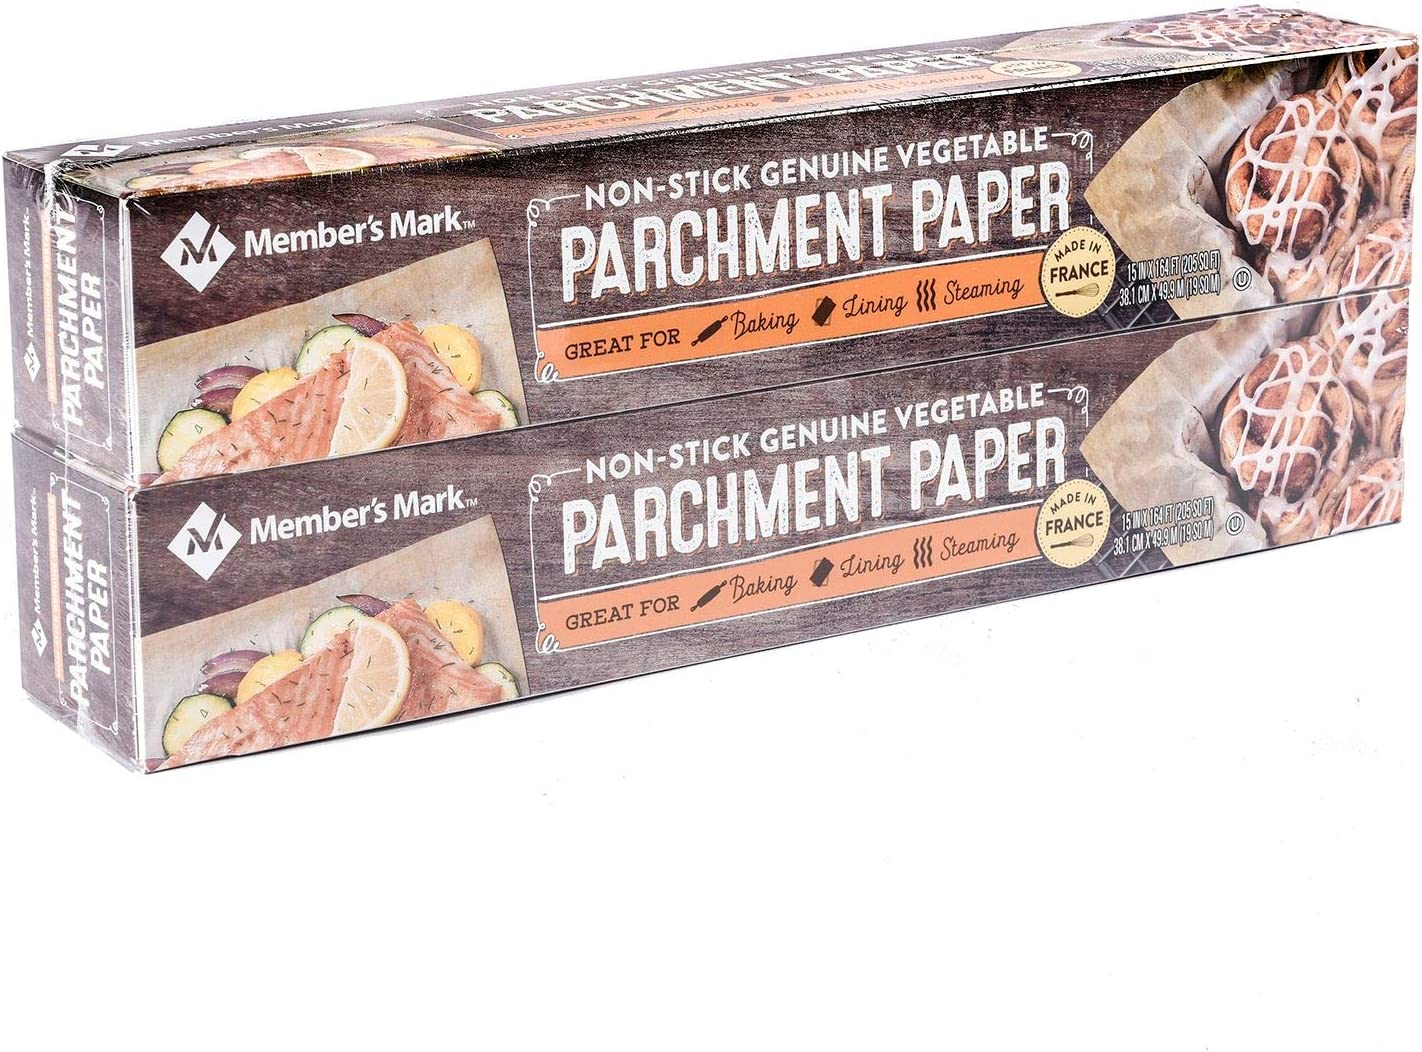 Member's Mark Non-Stick Parchment Paper, 1.5 Pound by Members Mark